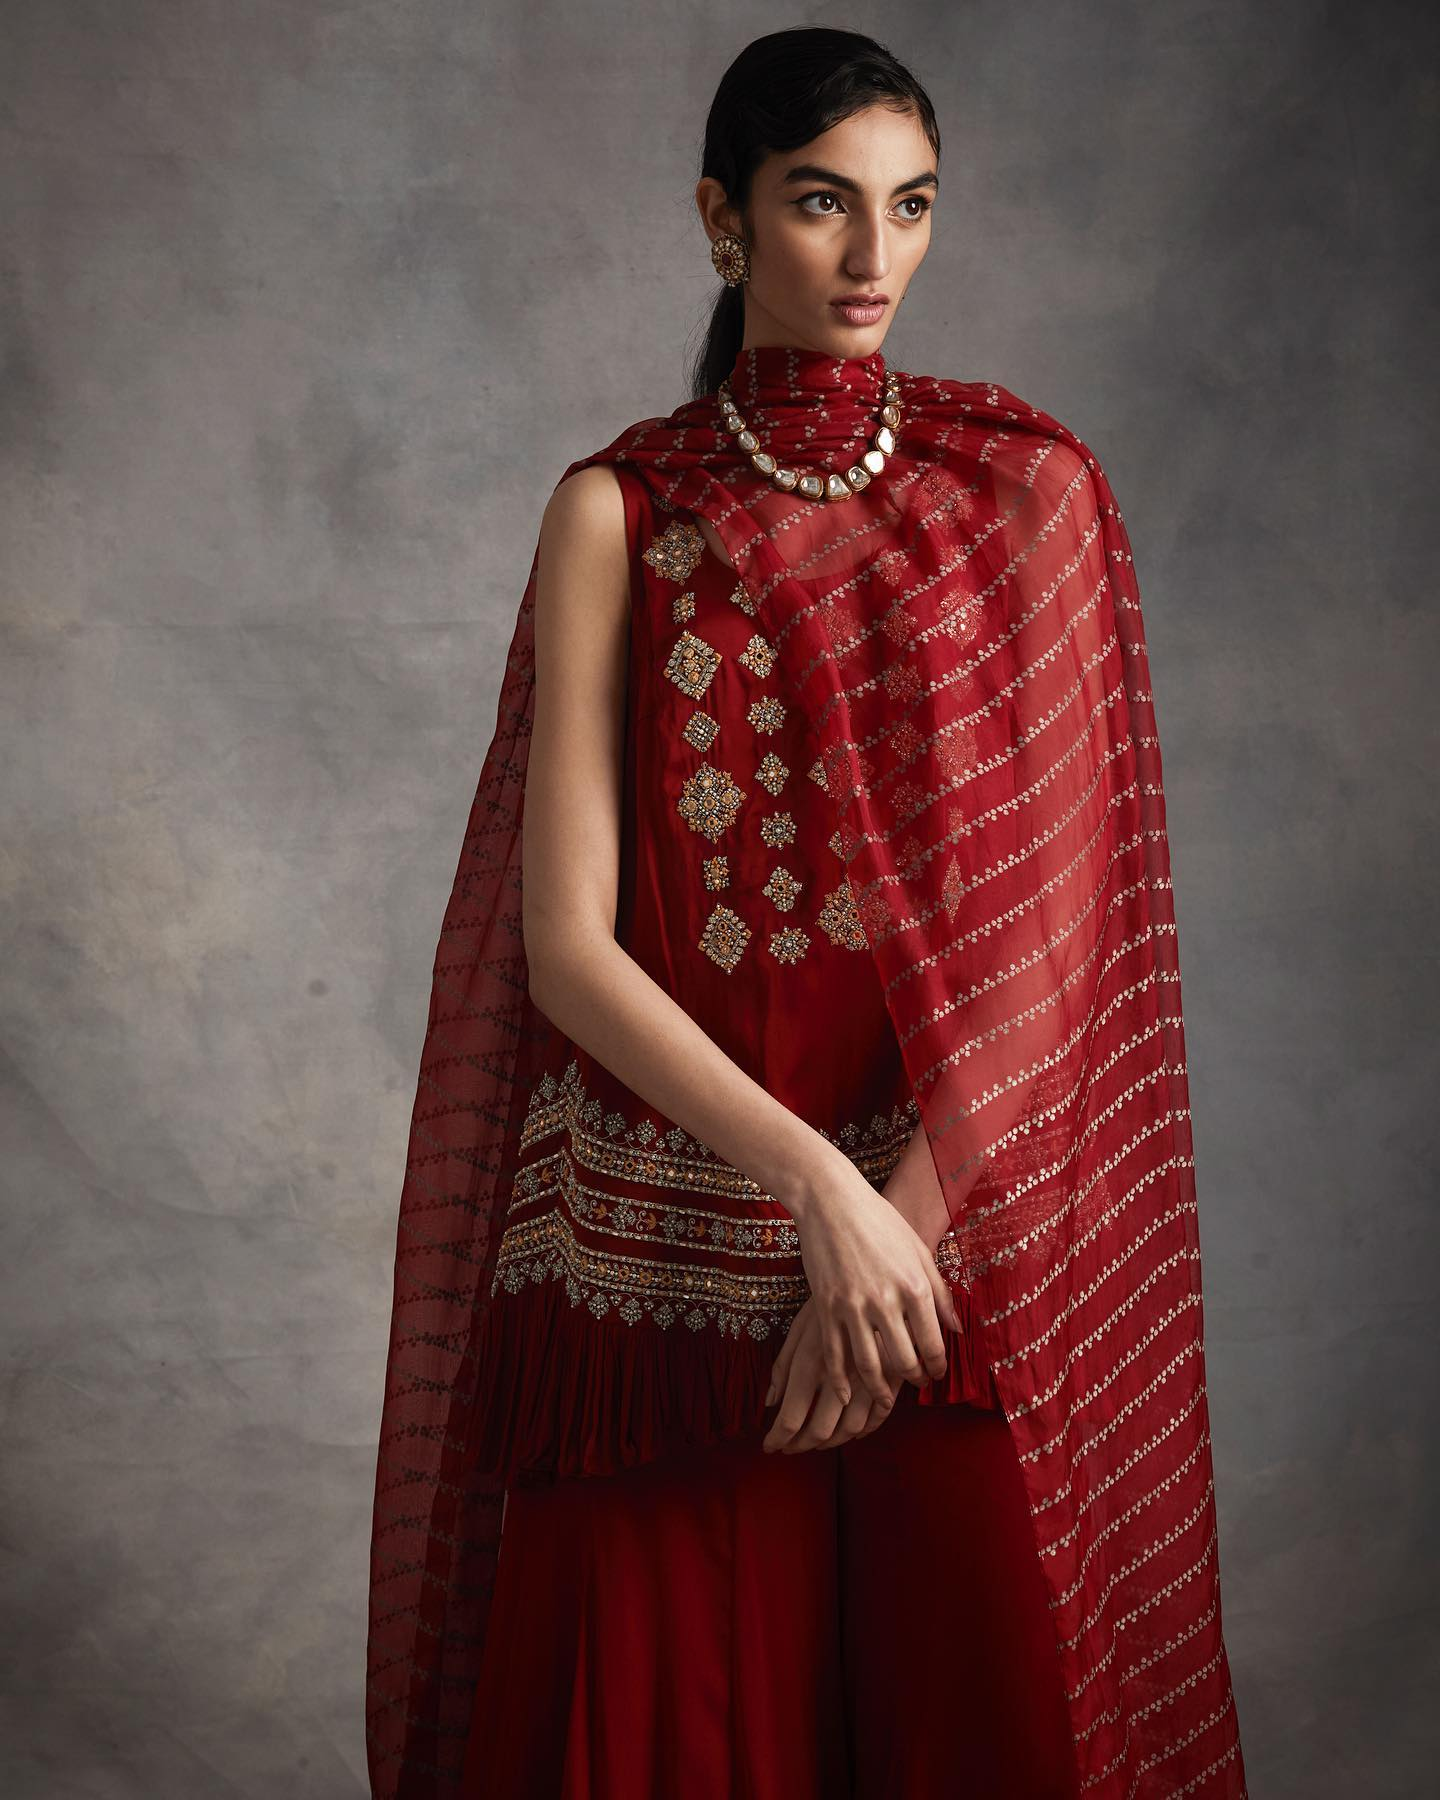 LOOK 9 - Red embroidered frill kurta with flared pants and nukta print organza dupatta. To place orders or for assistance please Call/WhatsApp on +91 9821497535. 2021-02-26